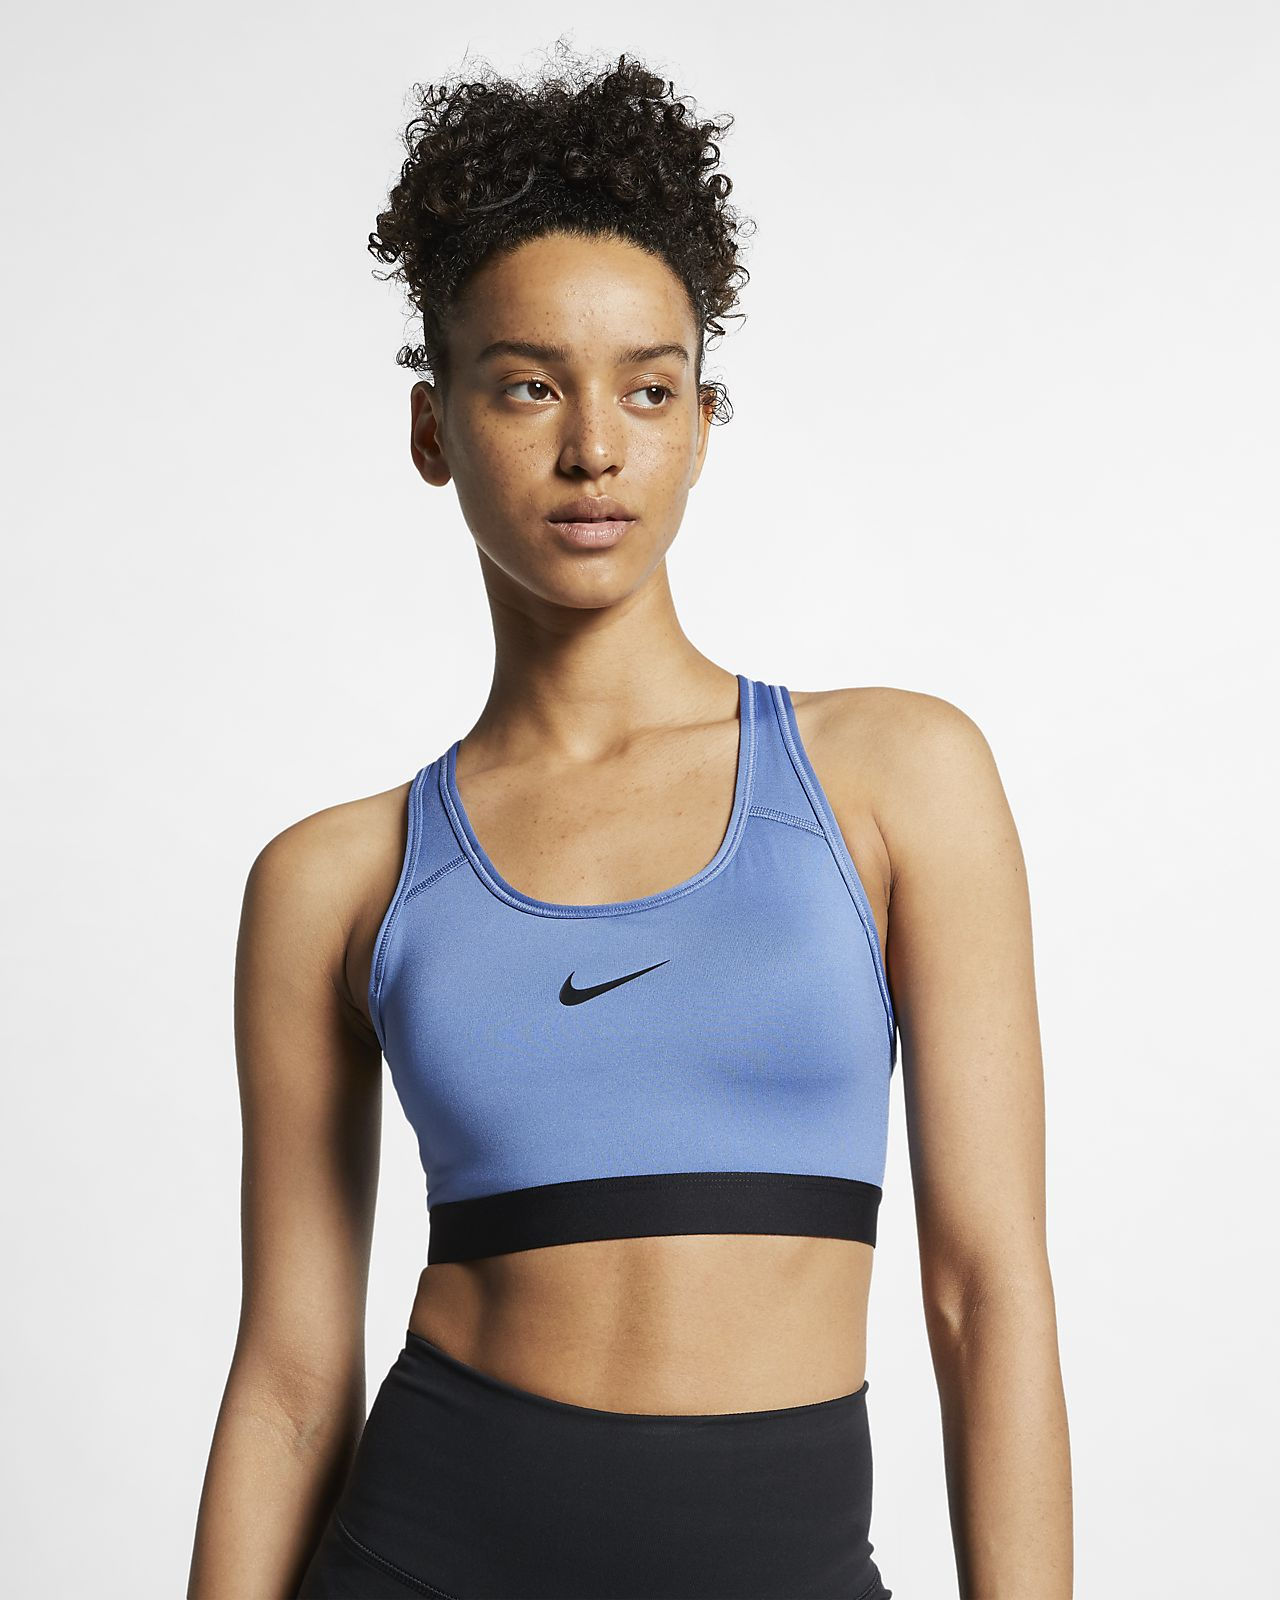 6cc1c80b5 Nike Classic Padded Women s Medium-Support Sports Bra. Nike.com